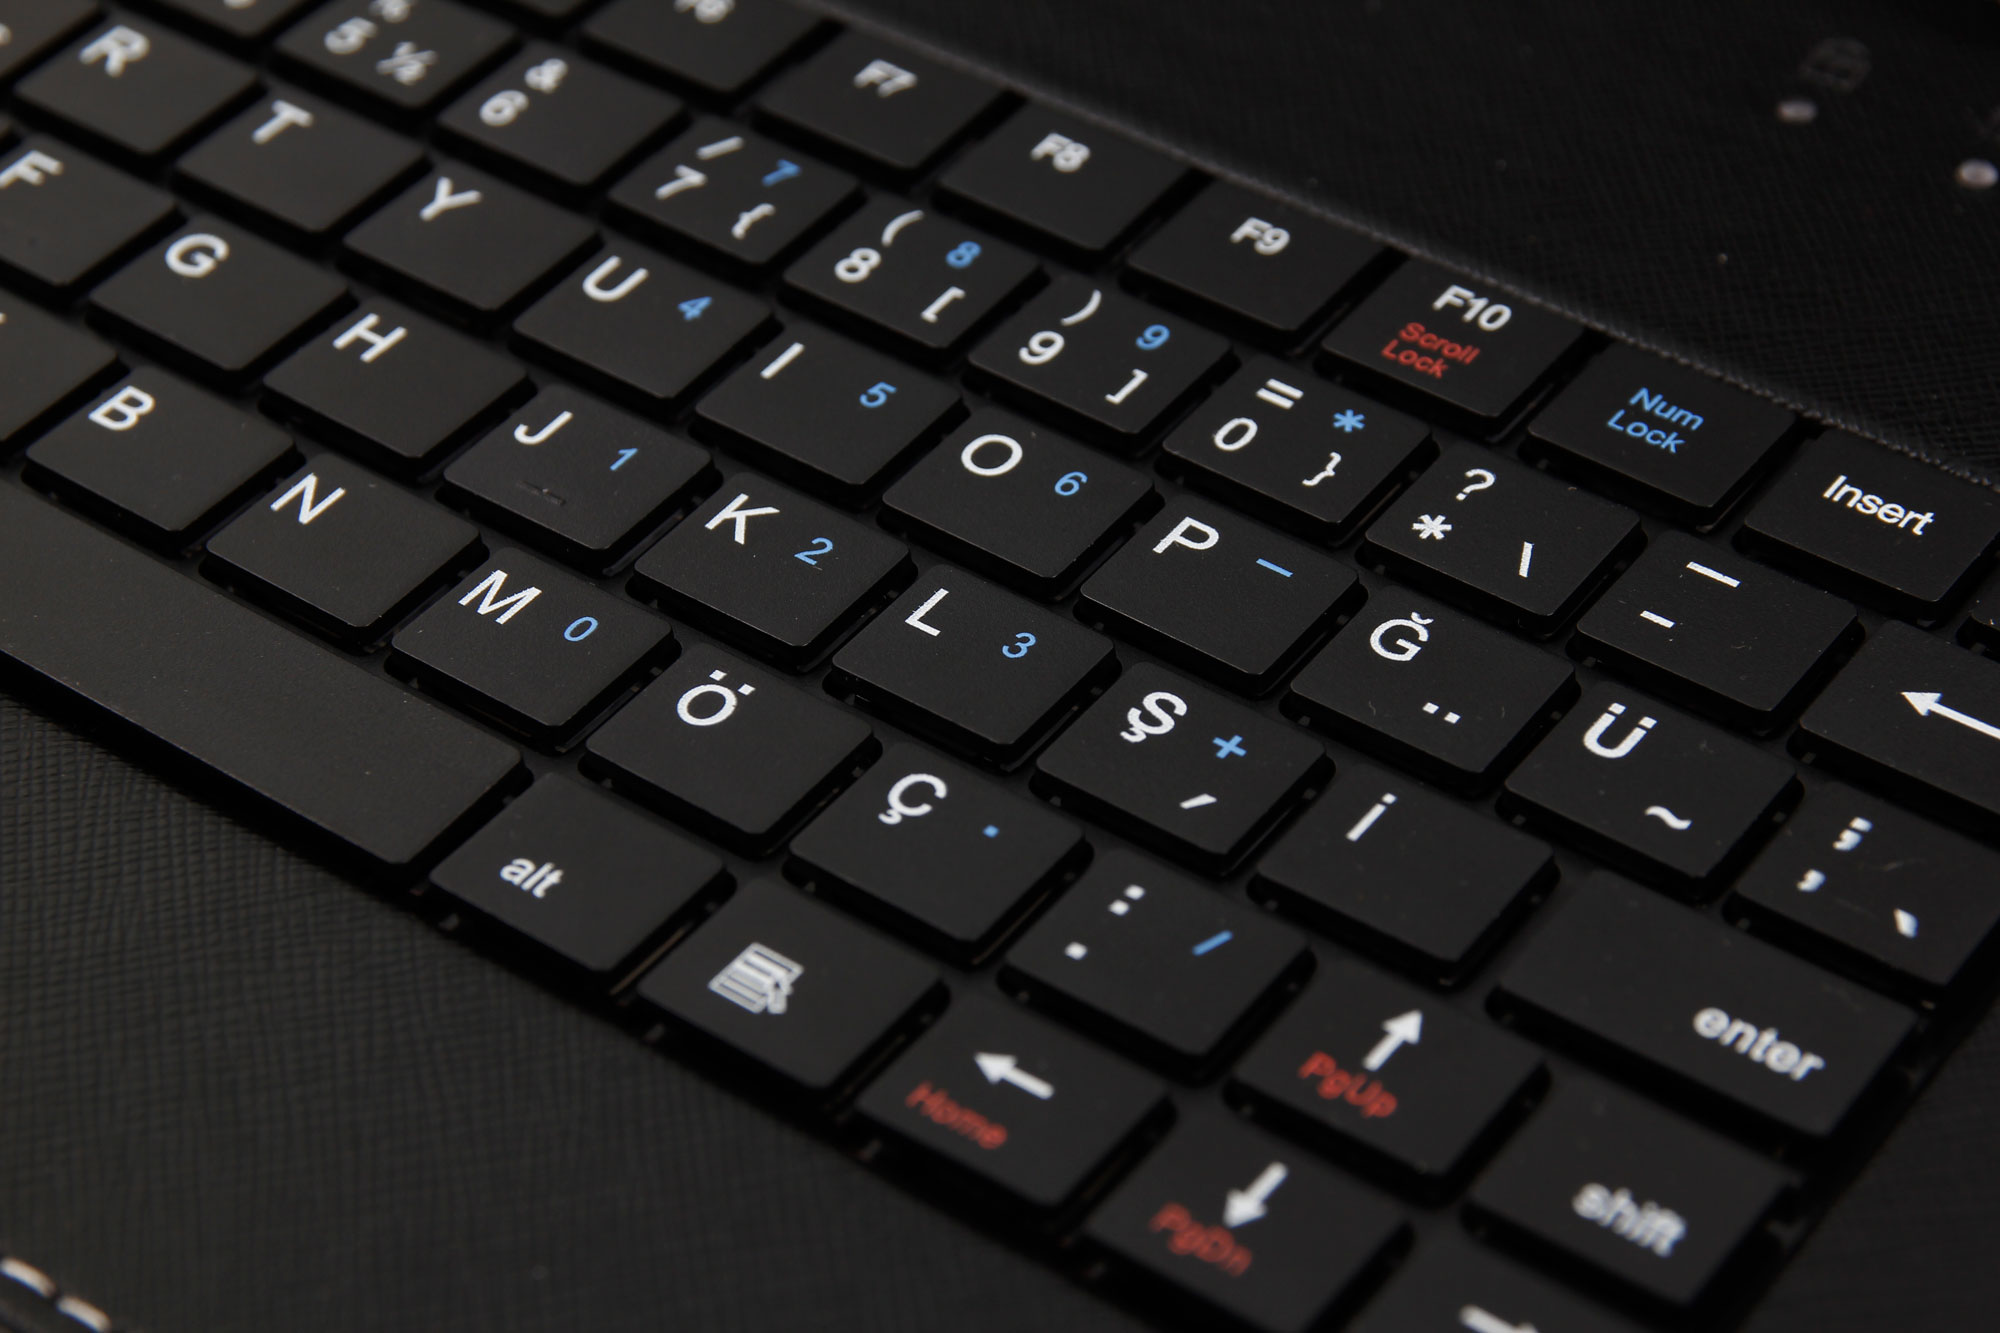 How can I write the Turkish letters on my English keyboard